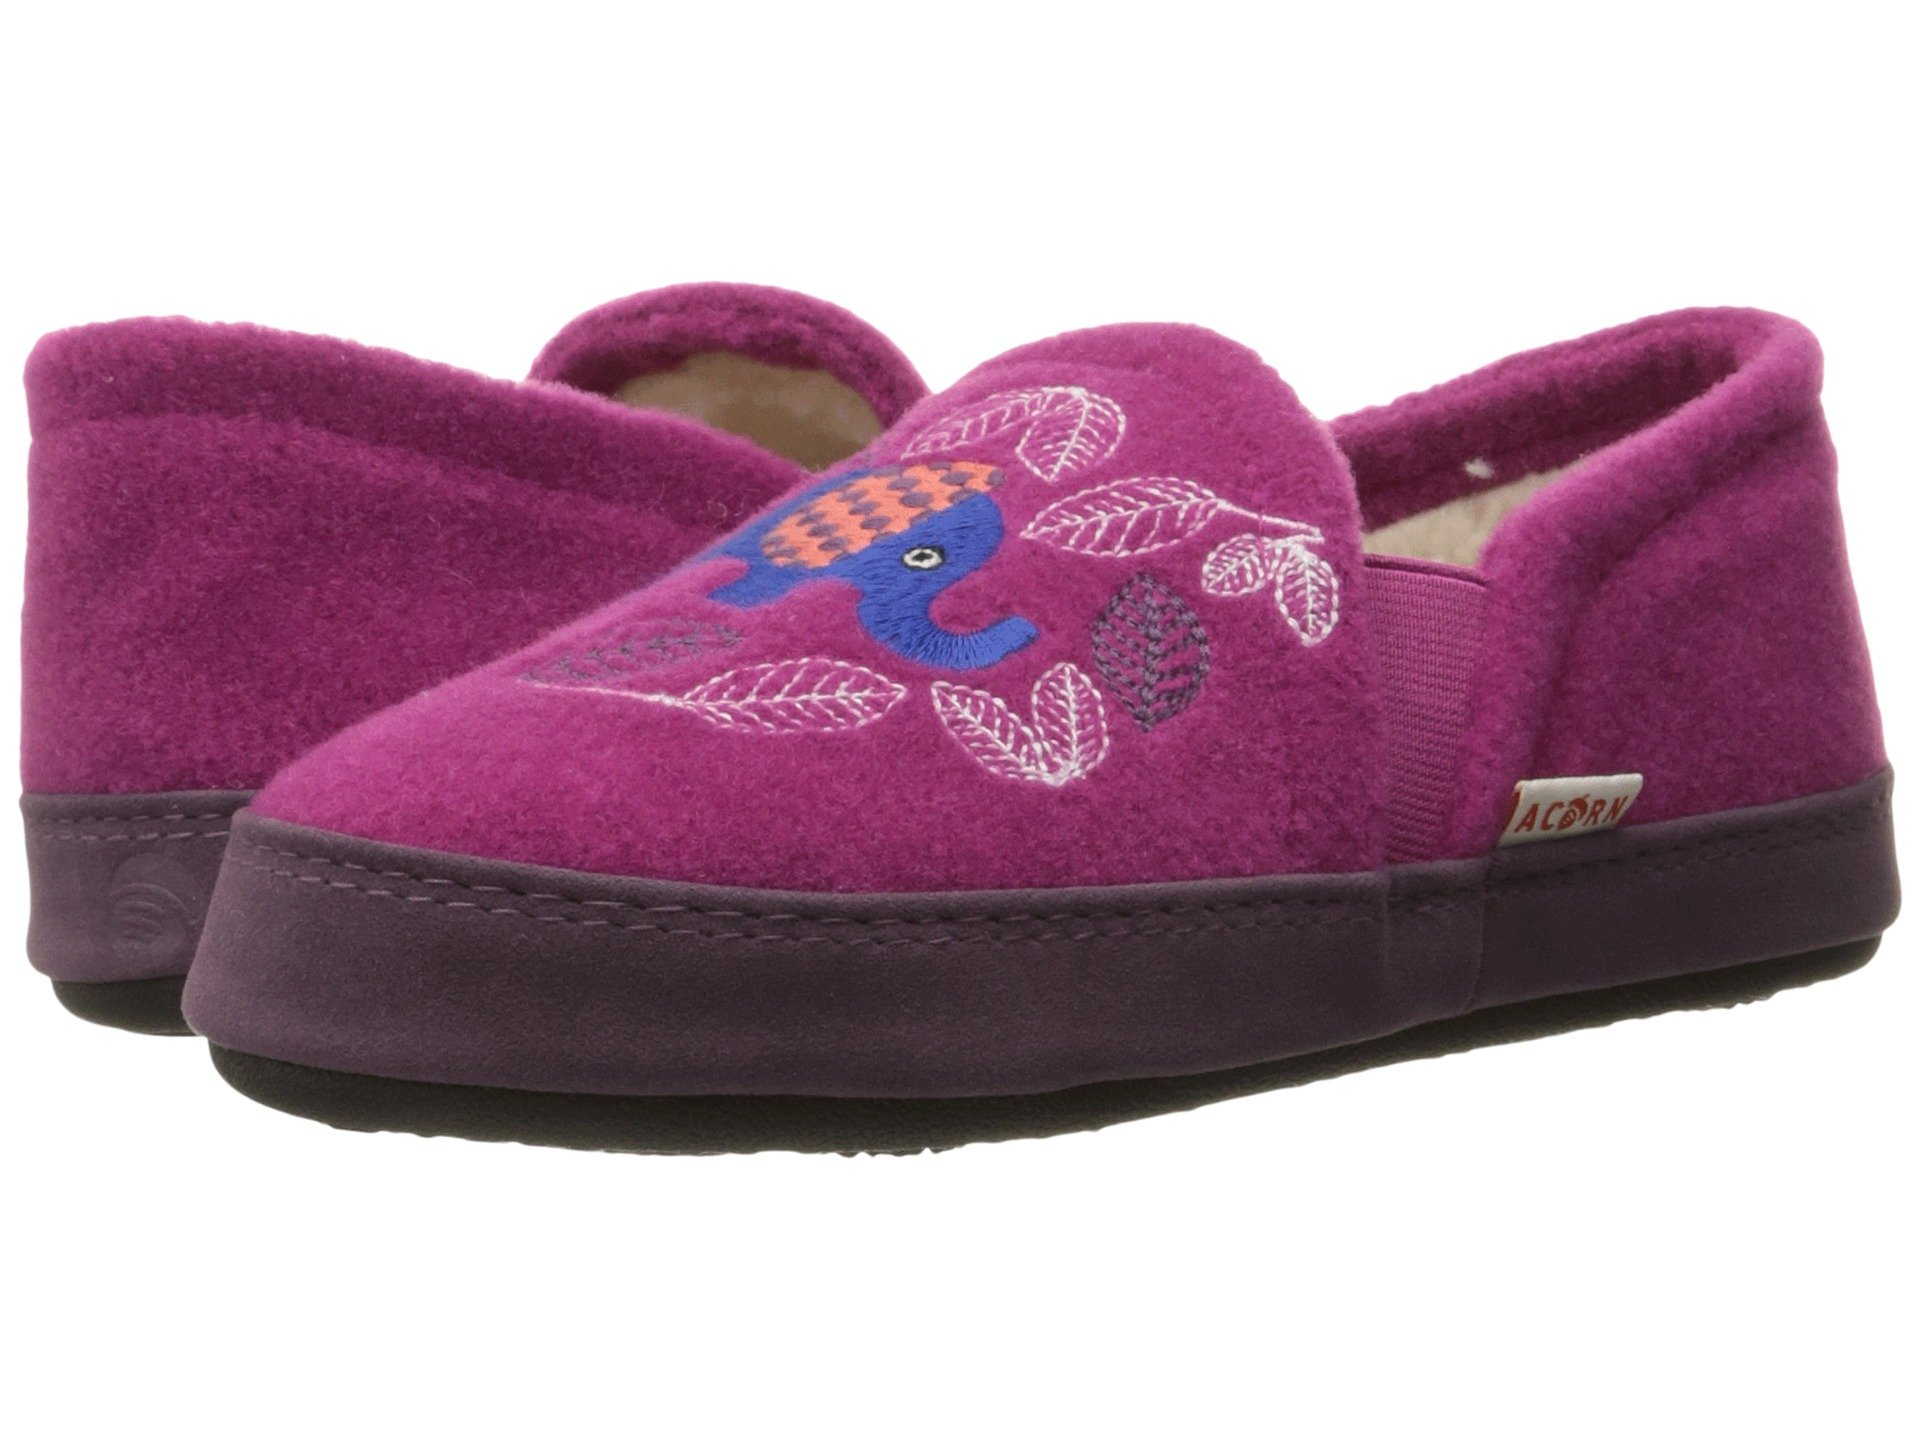 2546b841bd9 Girls Slippers + FREE SHIPPING